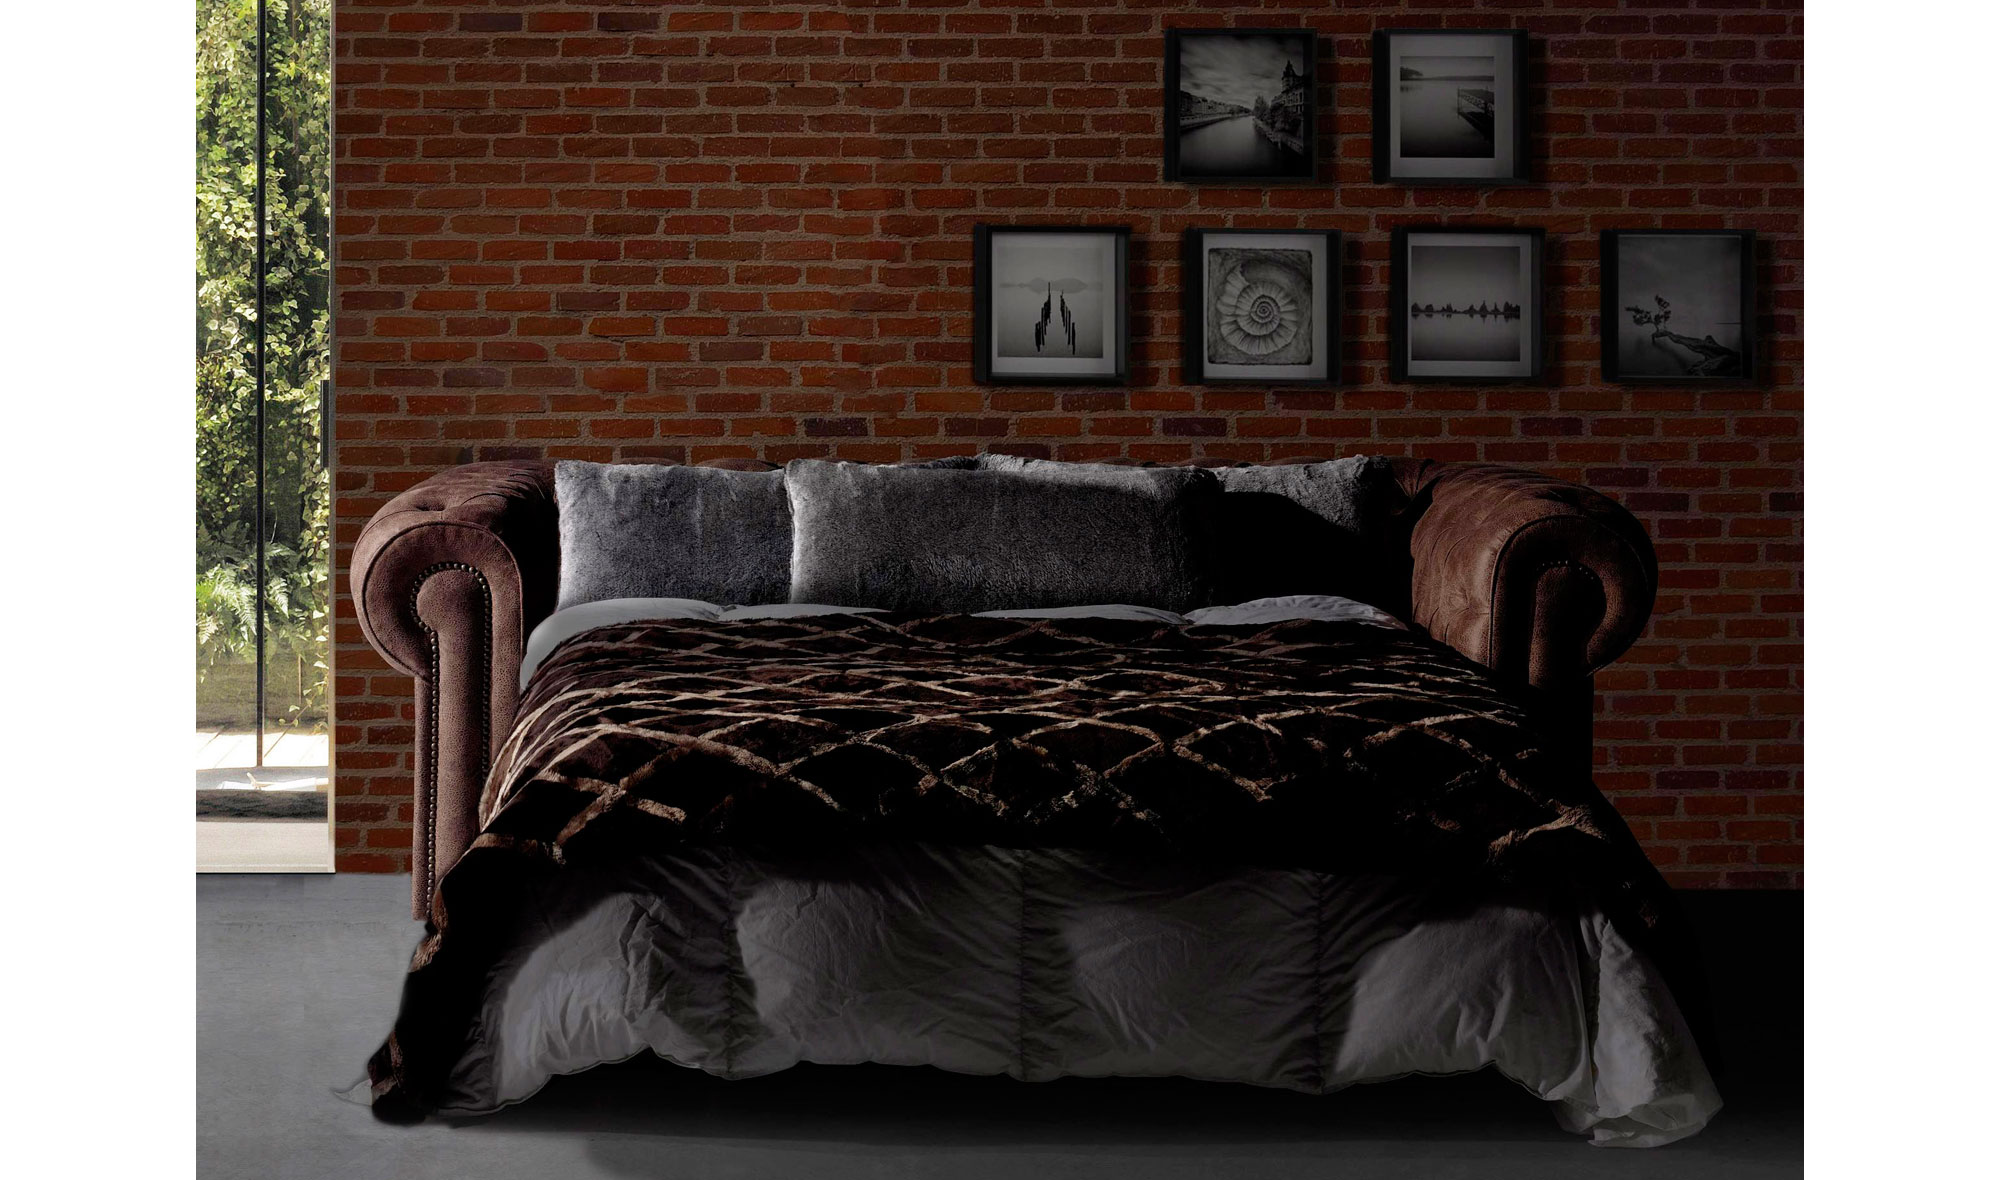 Sof chester cama vintage ford en for Sofa tipo chester